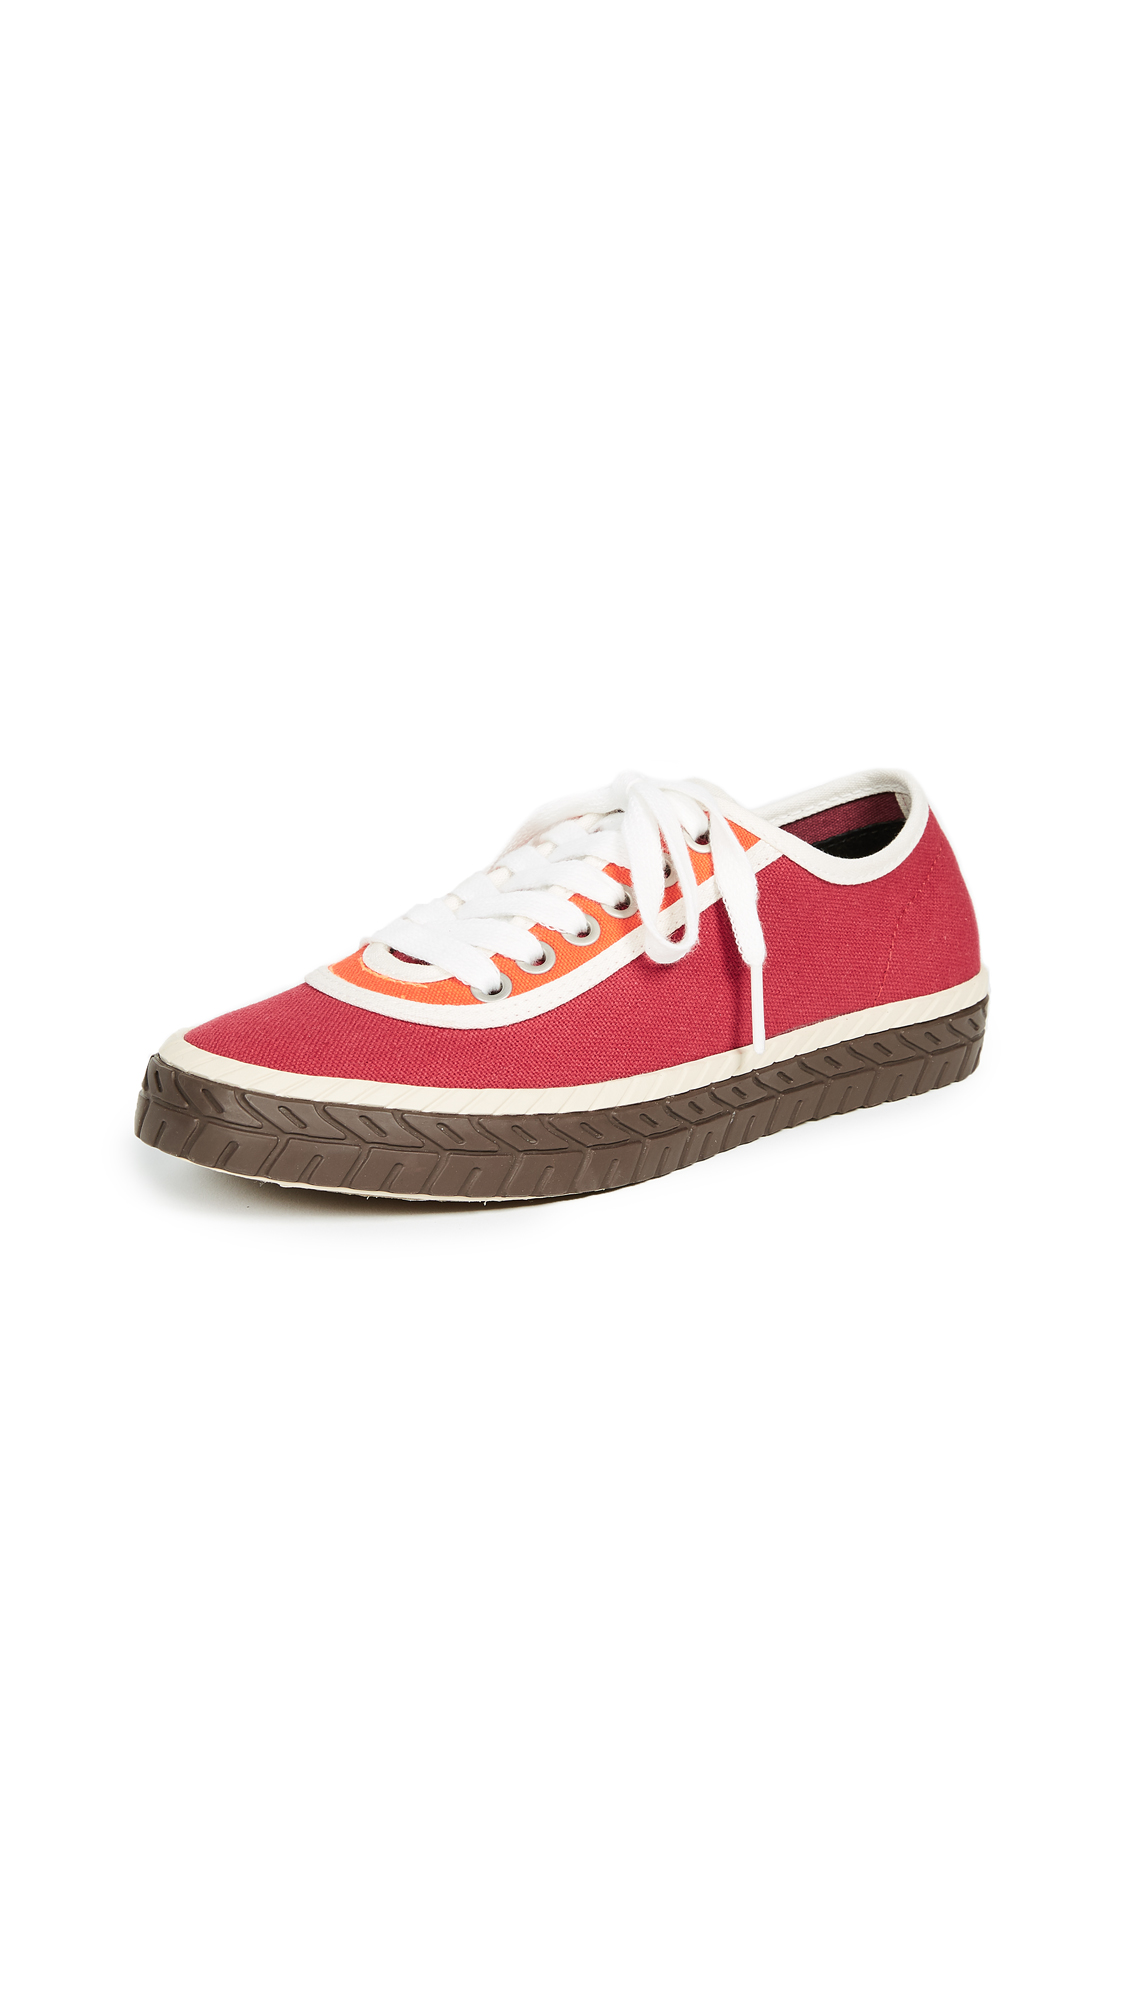 Marni Classic Sneakers - Lipstick Orange